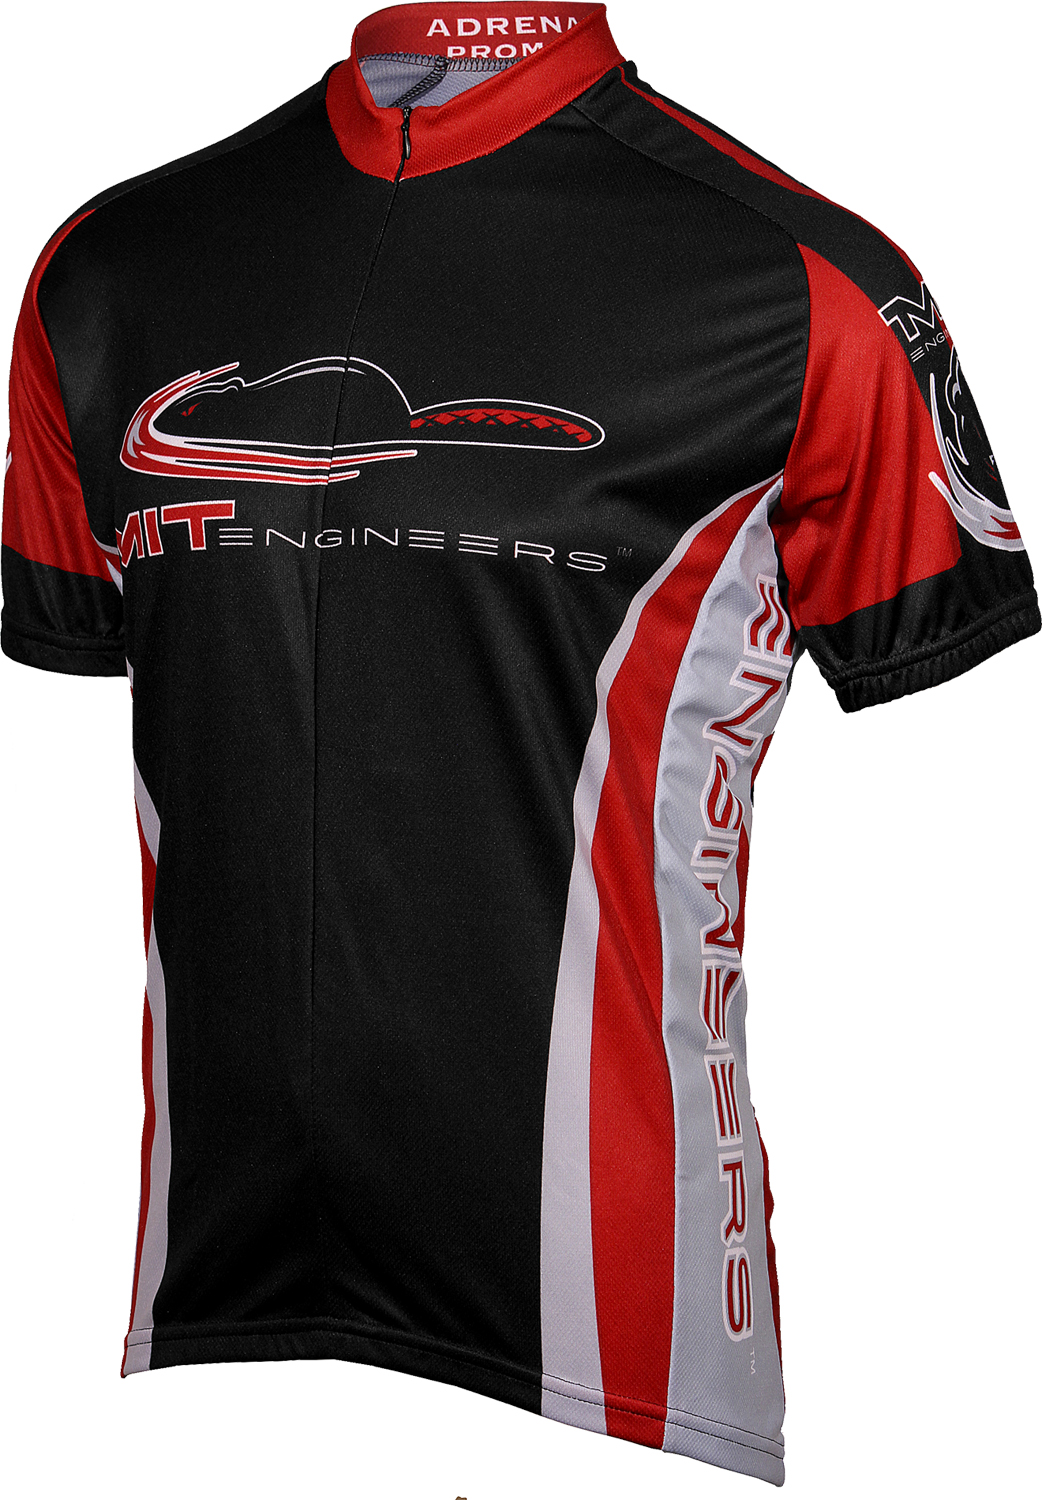 Massachusetts Institute of Technology (MIT) Cycling Jersey